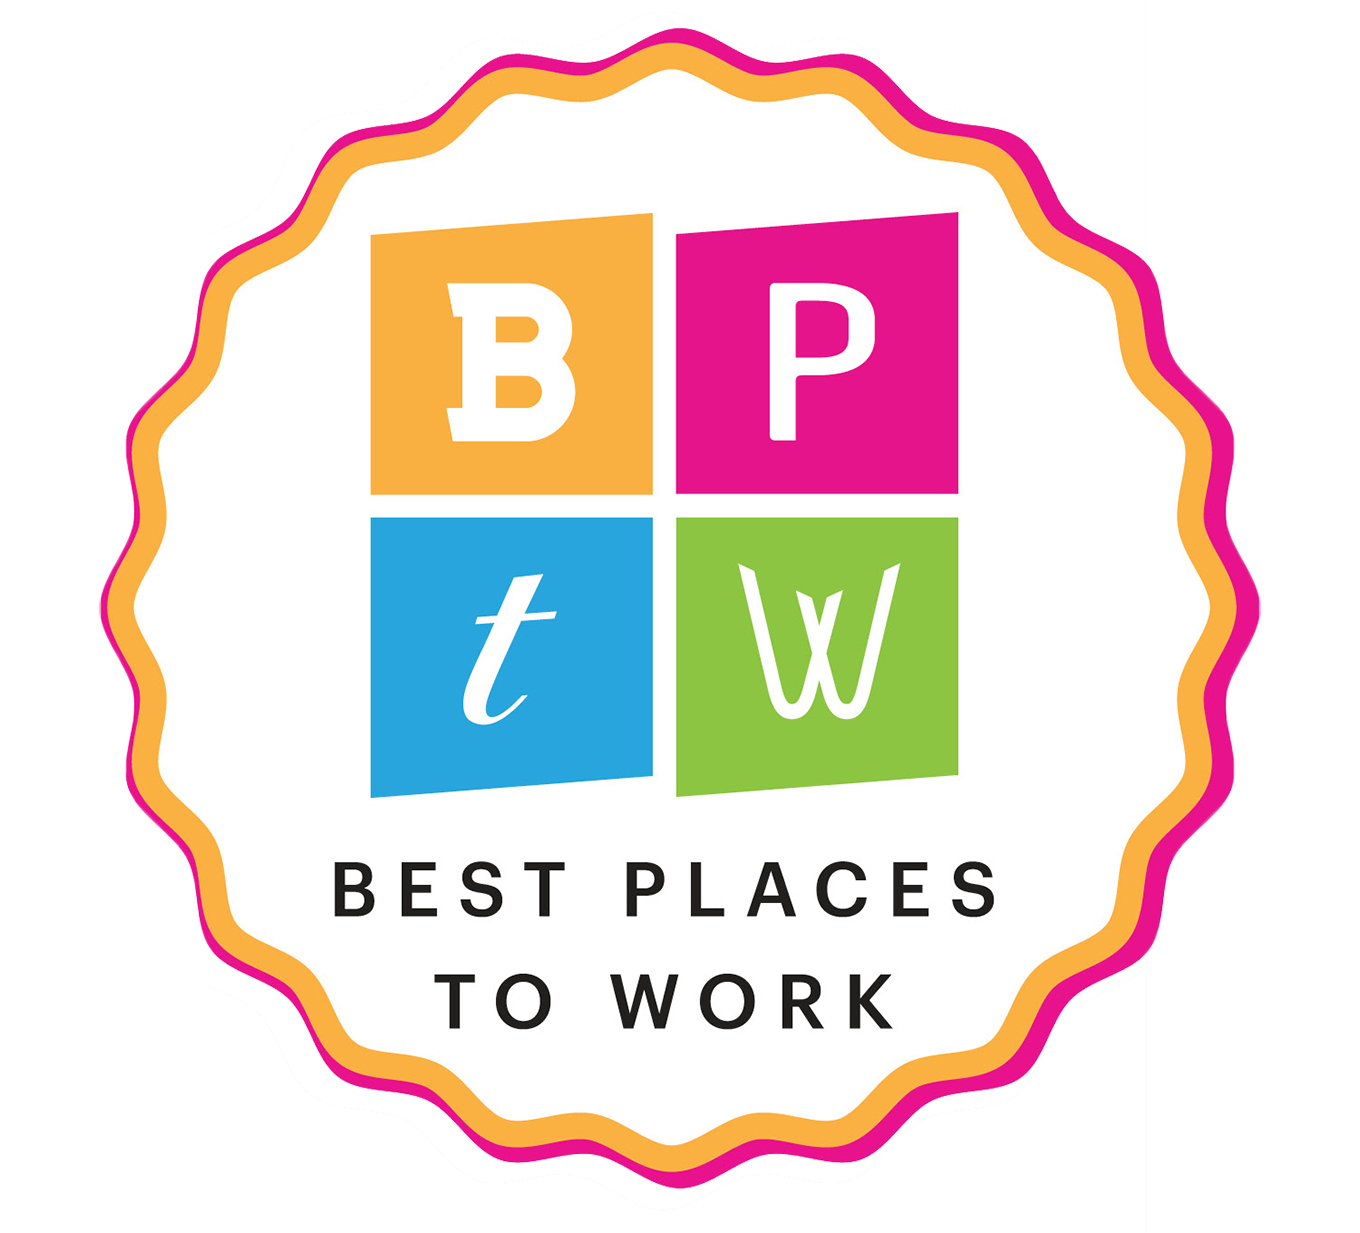 TEKLYNX - Best Places to Work Award